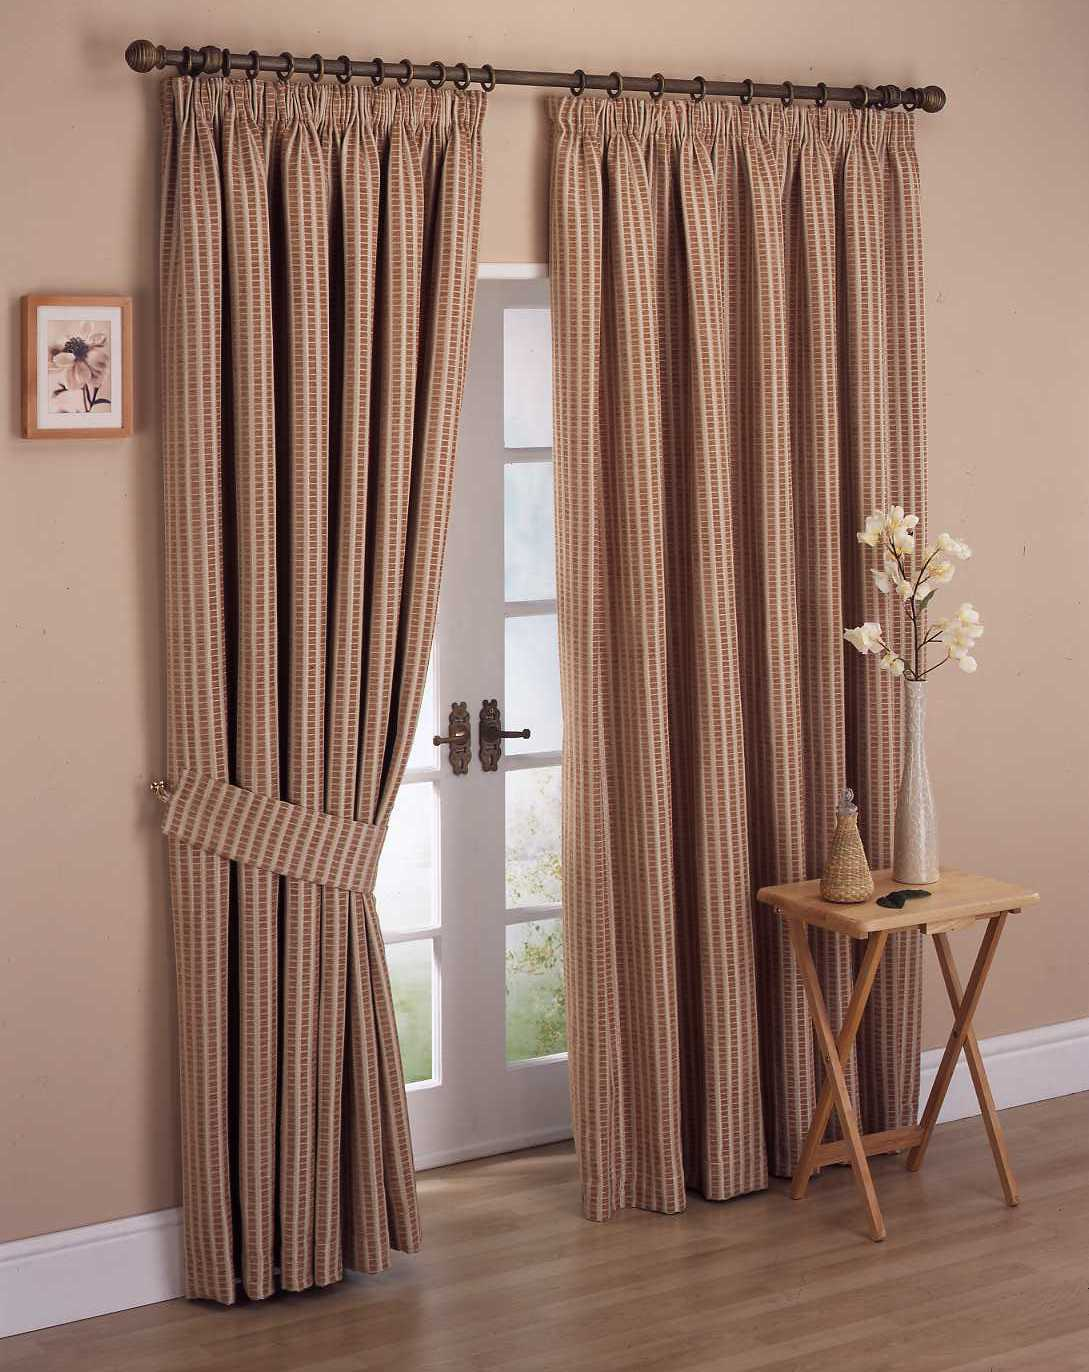 Top catalog of classic curtains designs 2013 for Home drapes and curtains